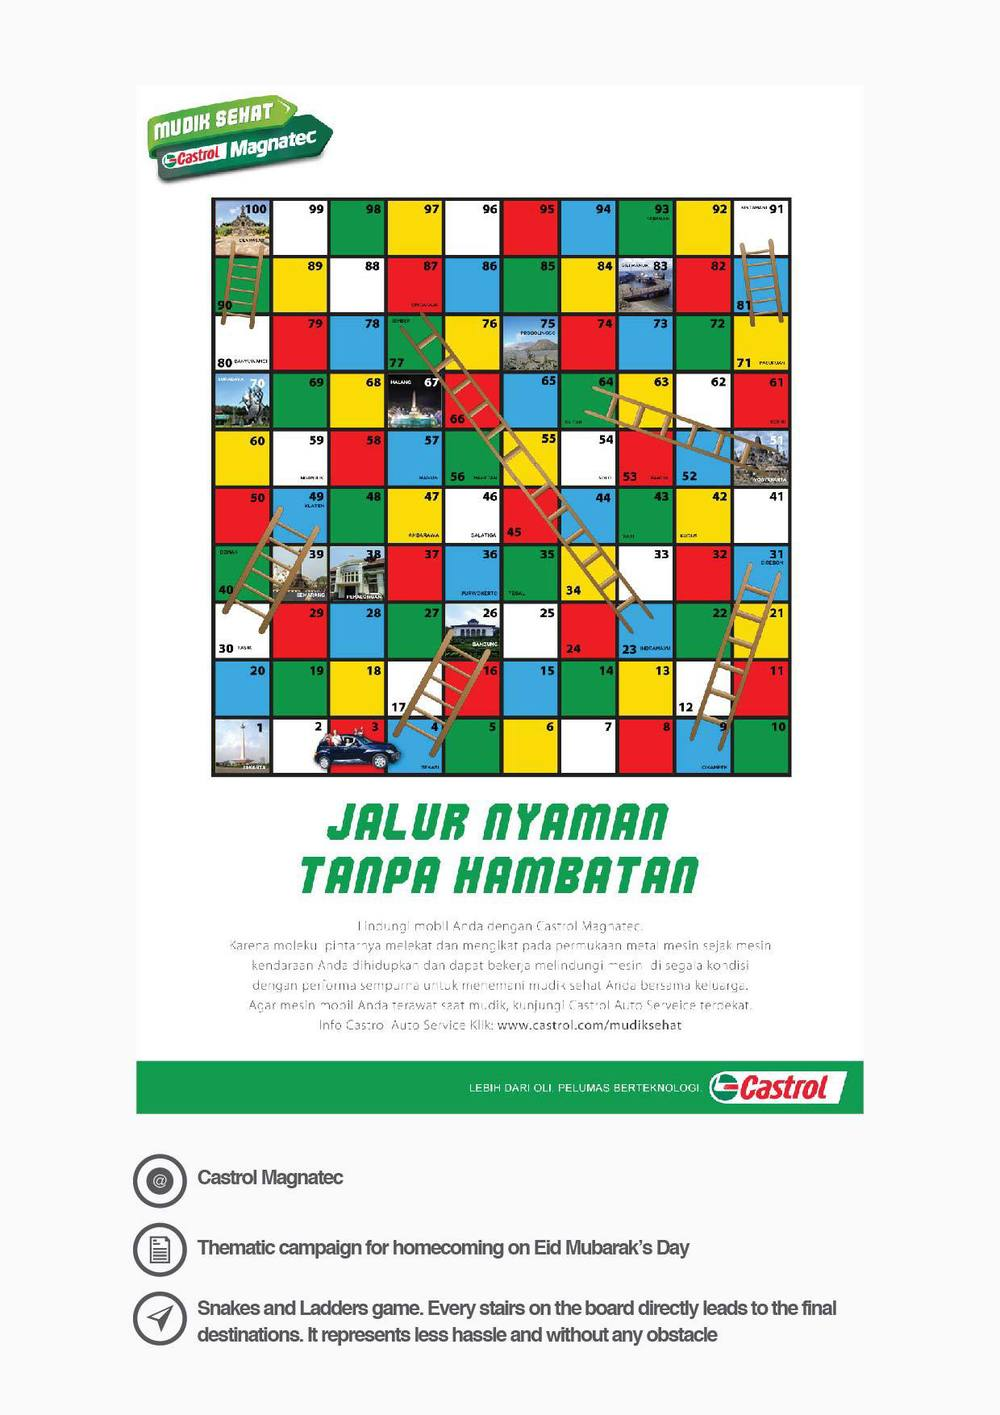 Castrol Magnatec Thematic campaign for homecoming on Eid Mubarak's Day